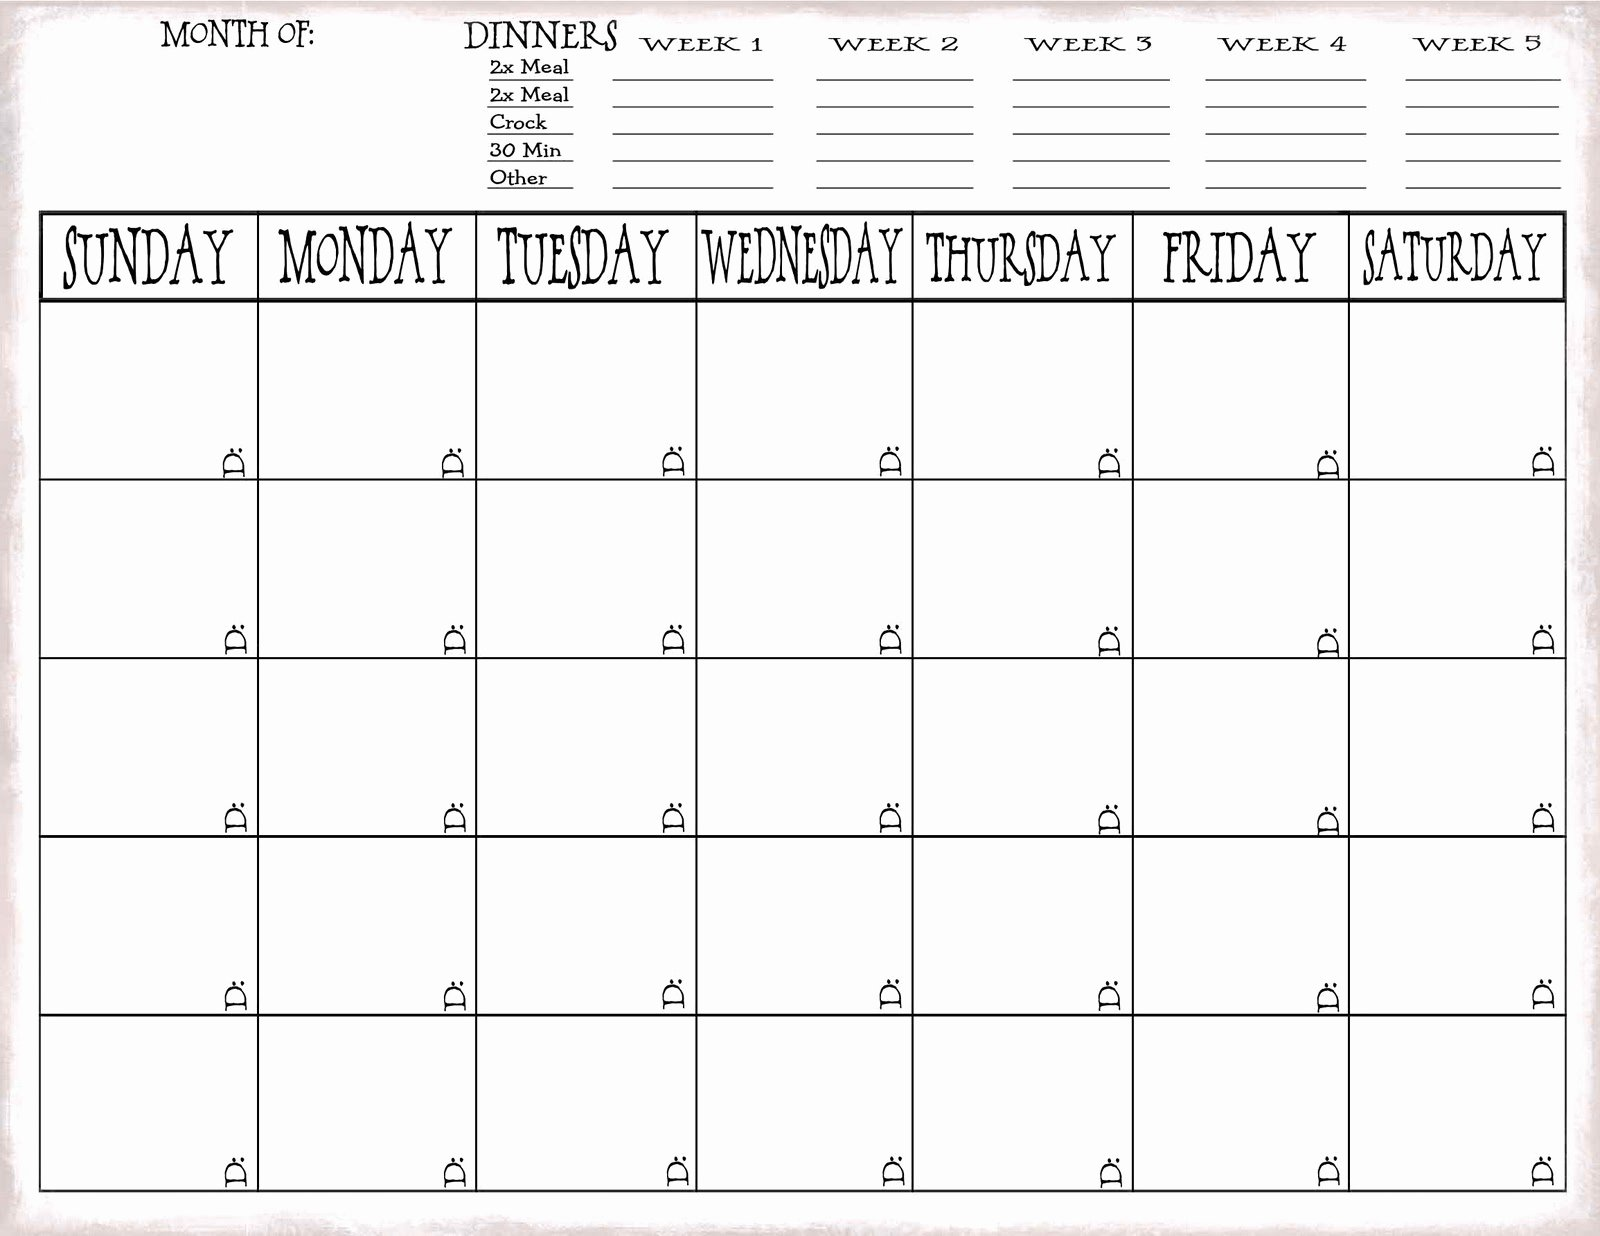 Meal Plan Calendar Template Luxury Just Sweet and Simple More On Meal Planning